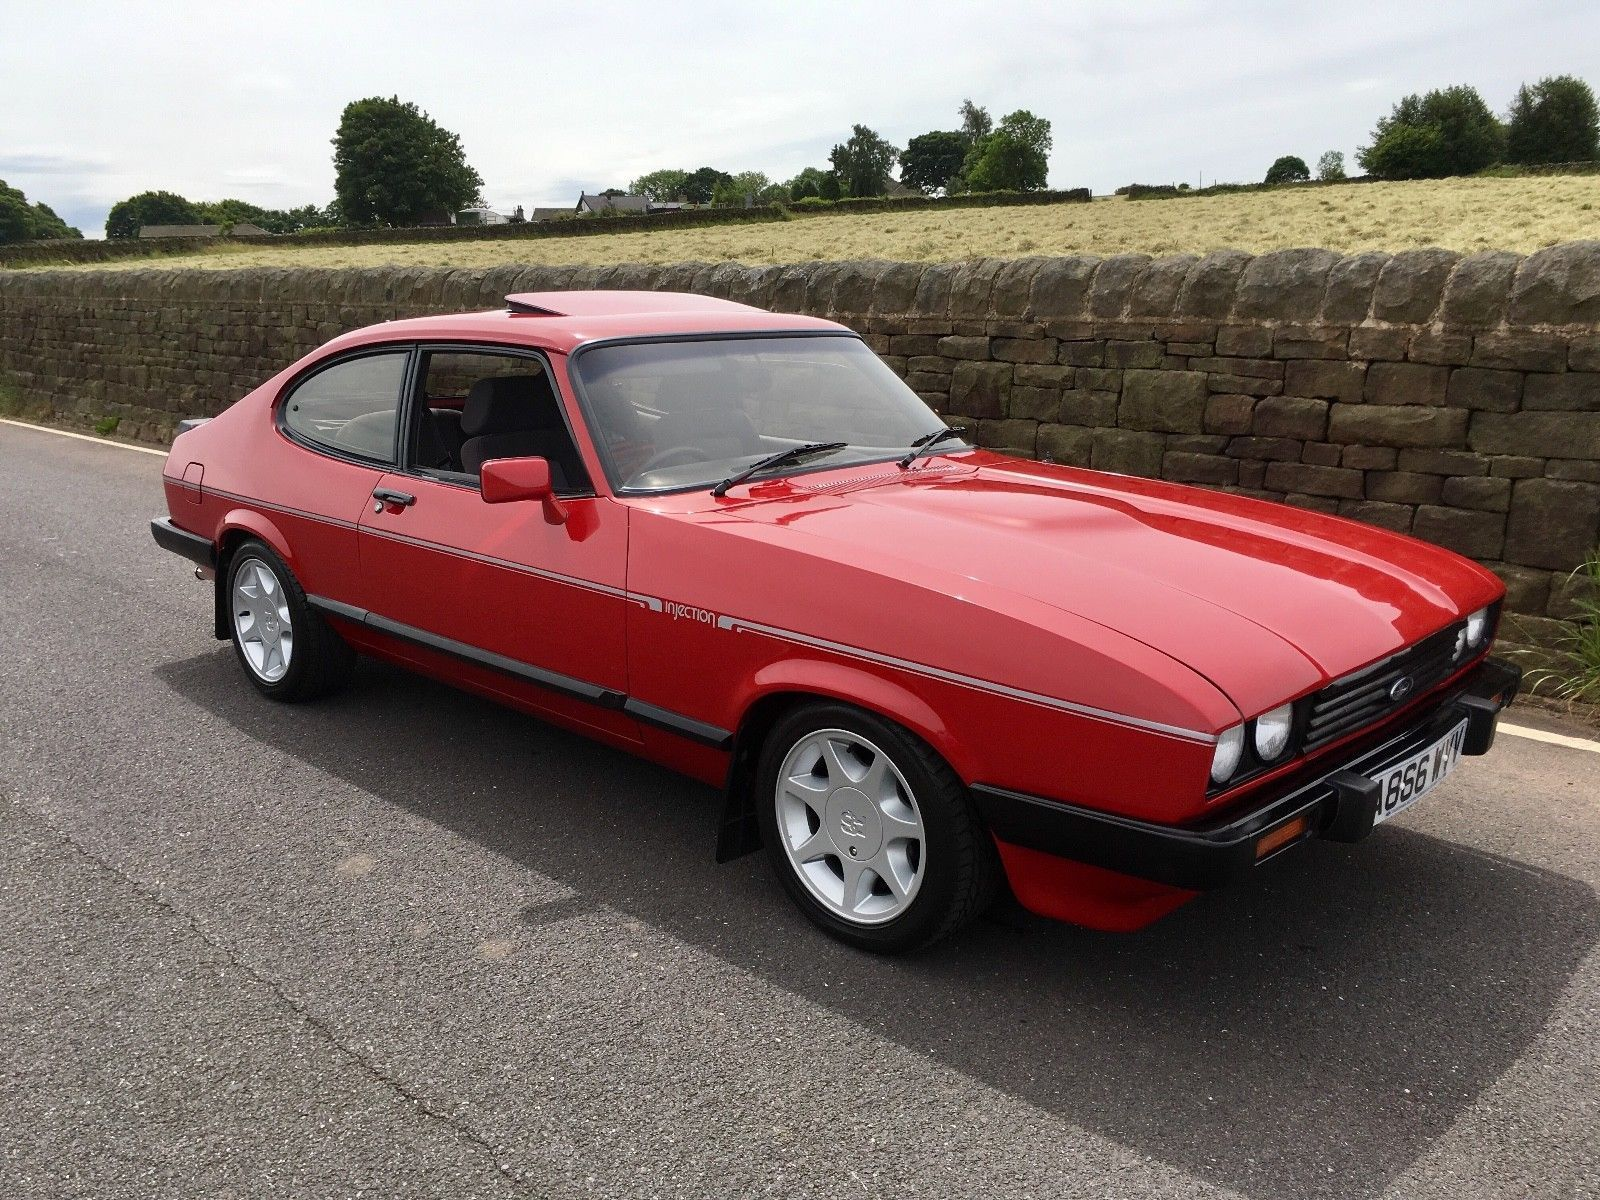 Ebay Ford Capri 2 8 Injection 1984 Cardinal Red 1980s Cars